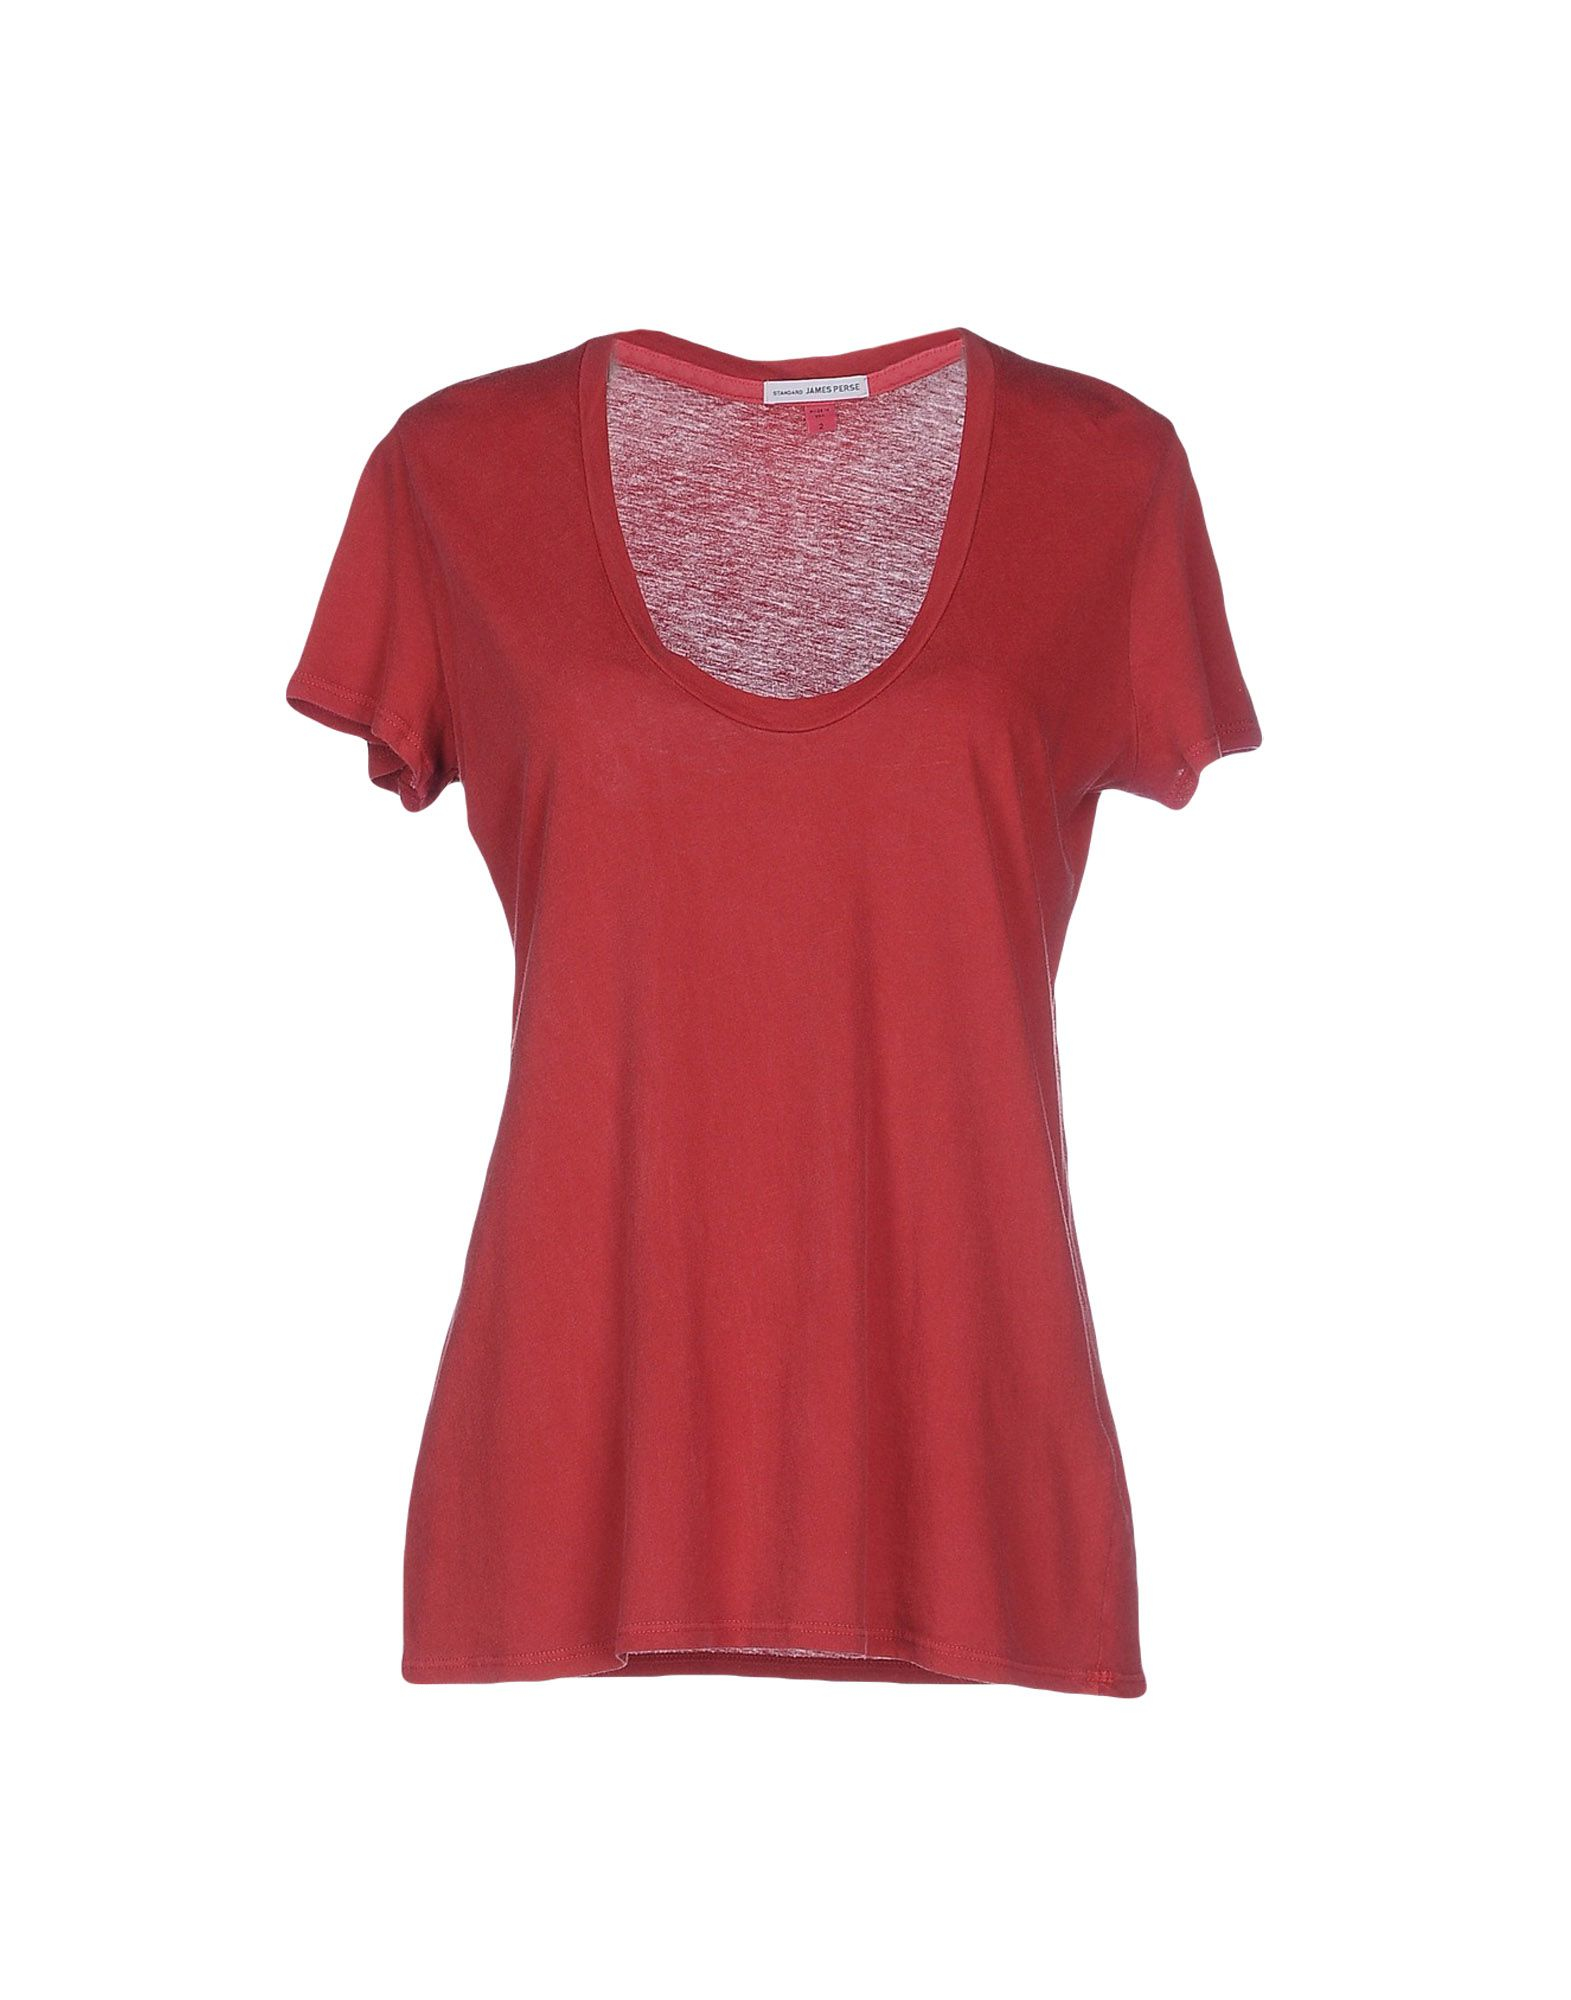 James perse t shirt in red save 37 lyst for James perse t shirts sale